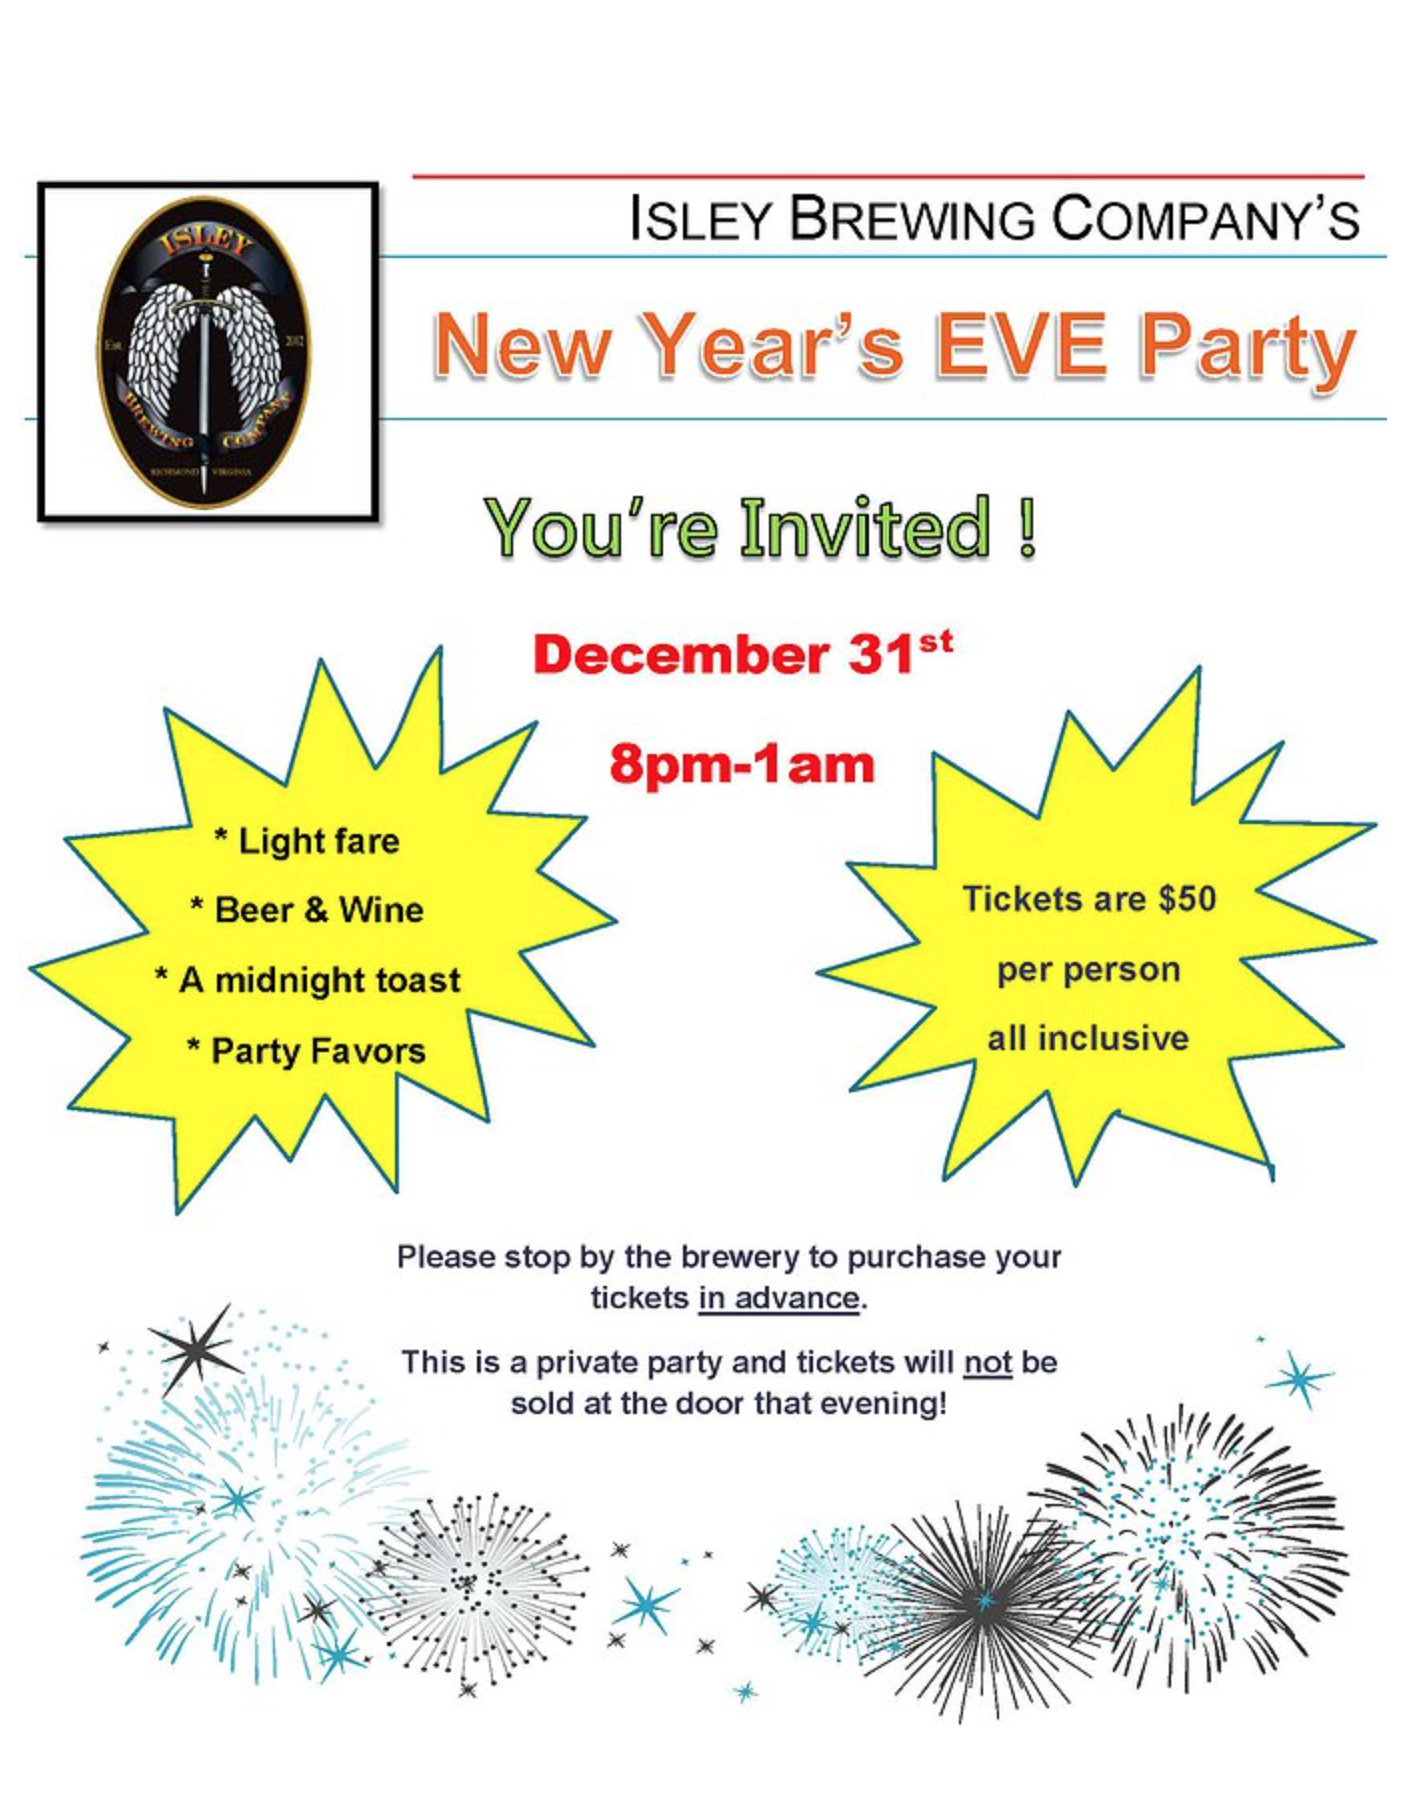 Isley Brewing Company New Year's Eve